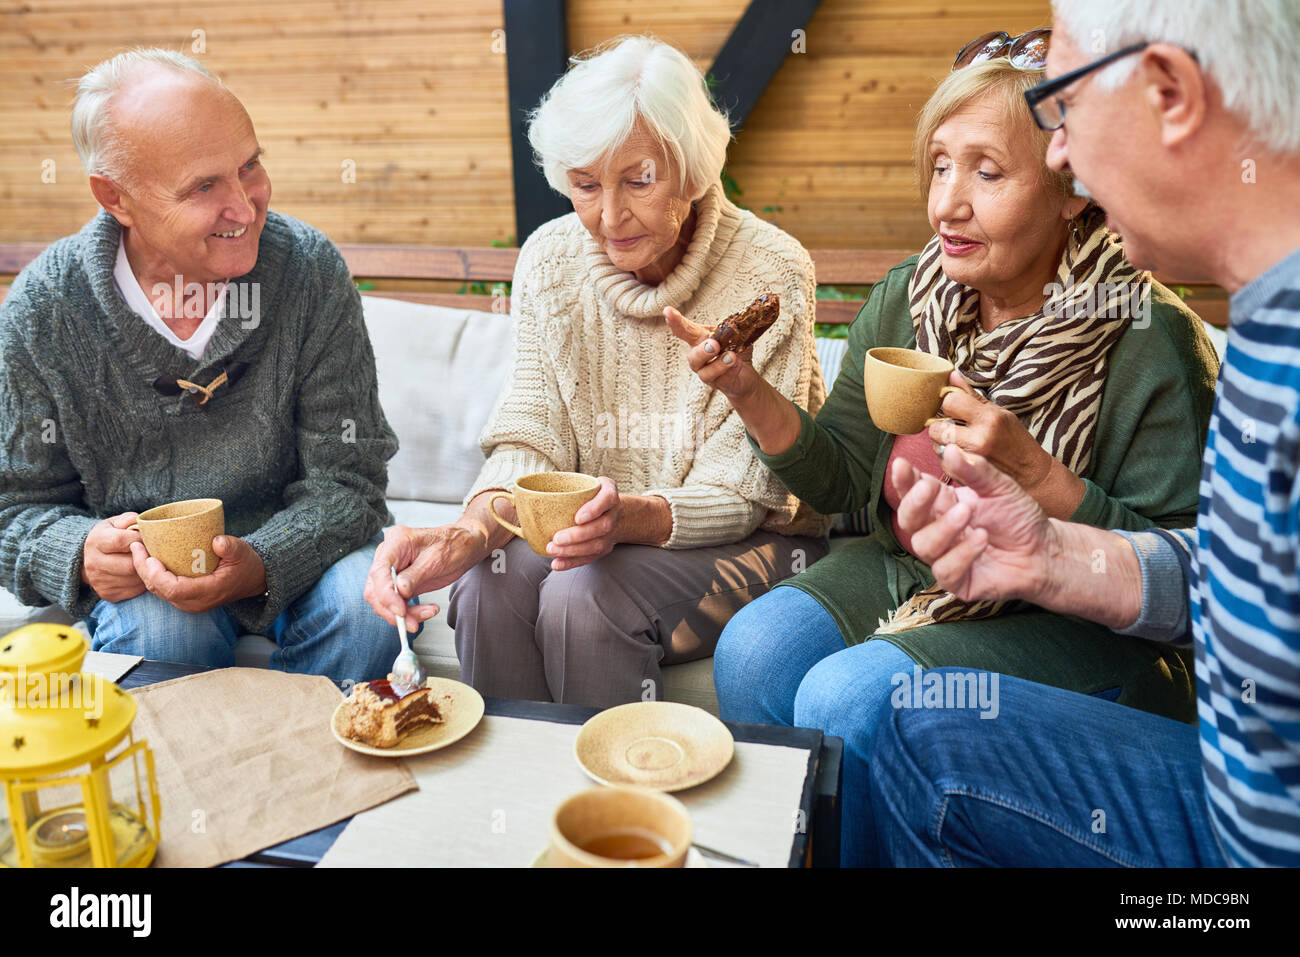 Senior Friends Enjoying Tea Time in Cafe - Stock Image